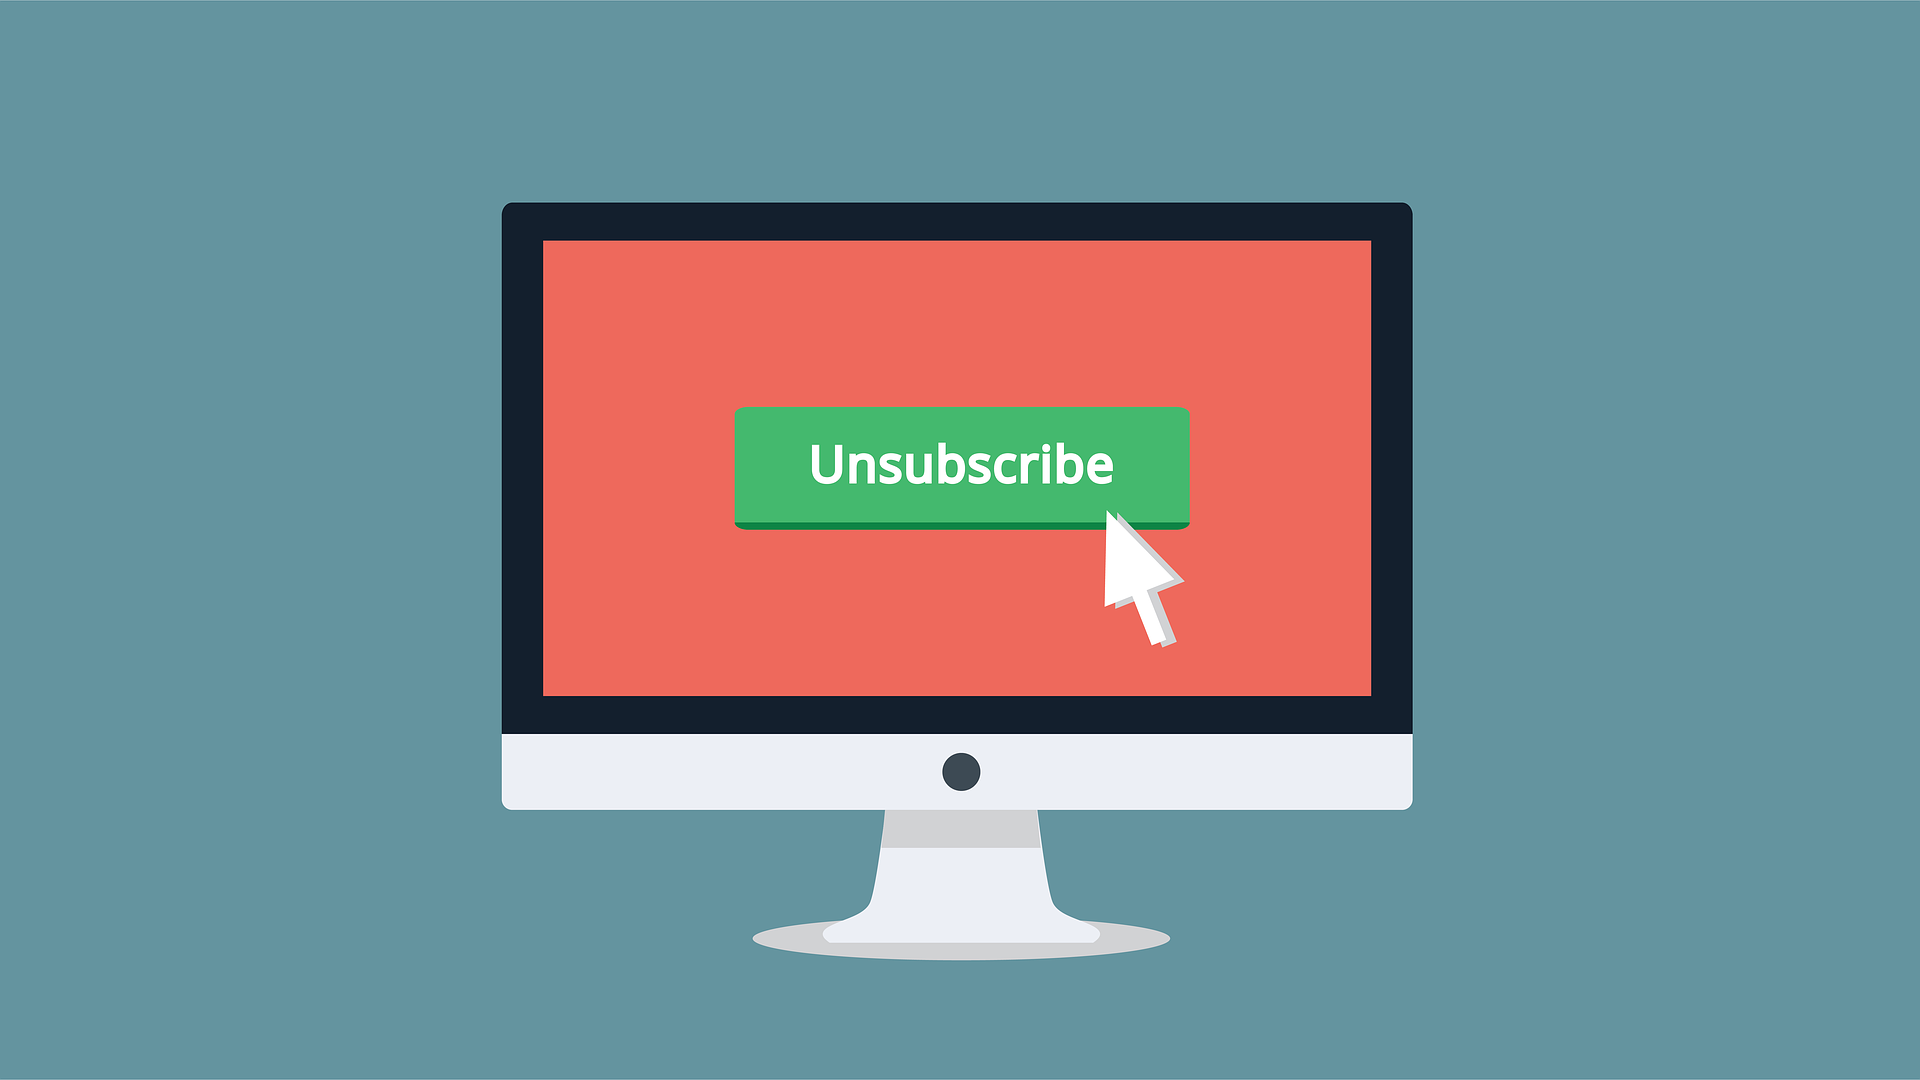 Image of an unsubscribe button symbolizing the importance of an email distribution schedule